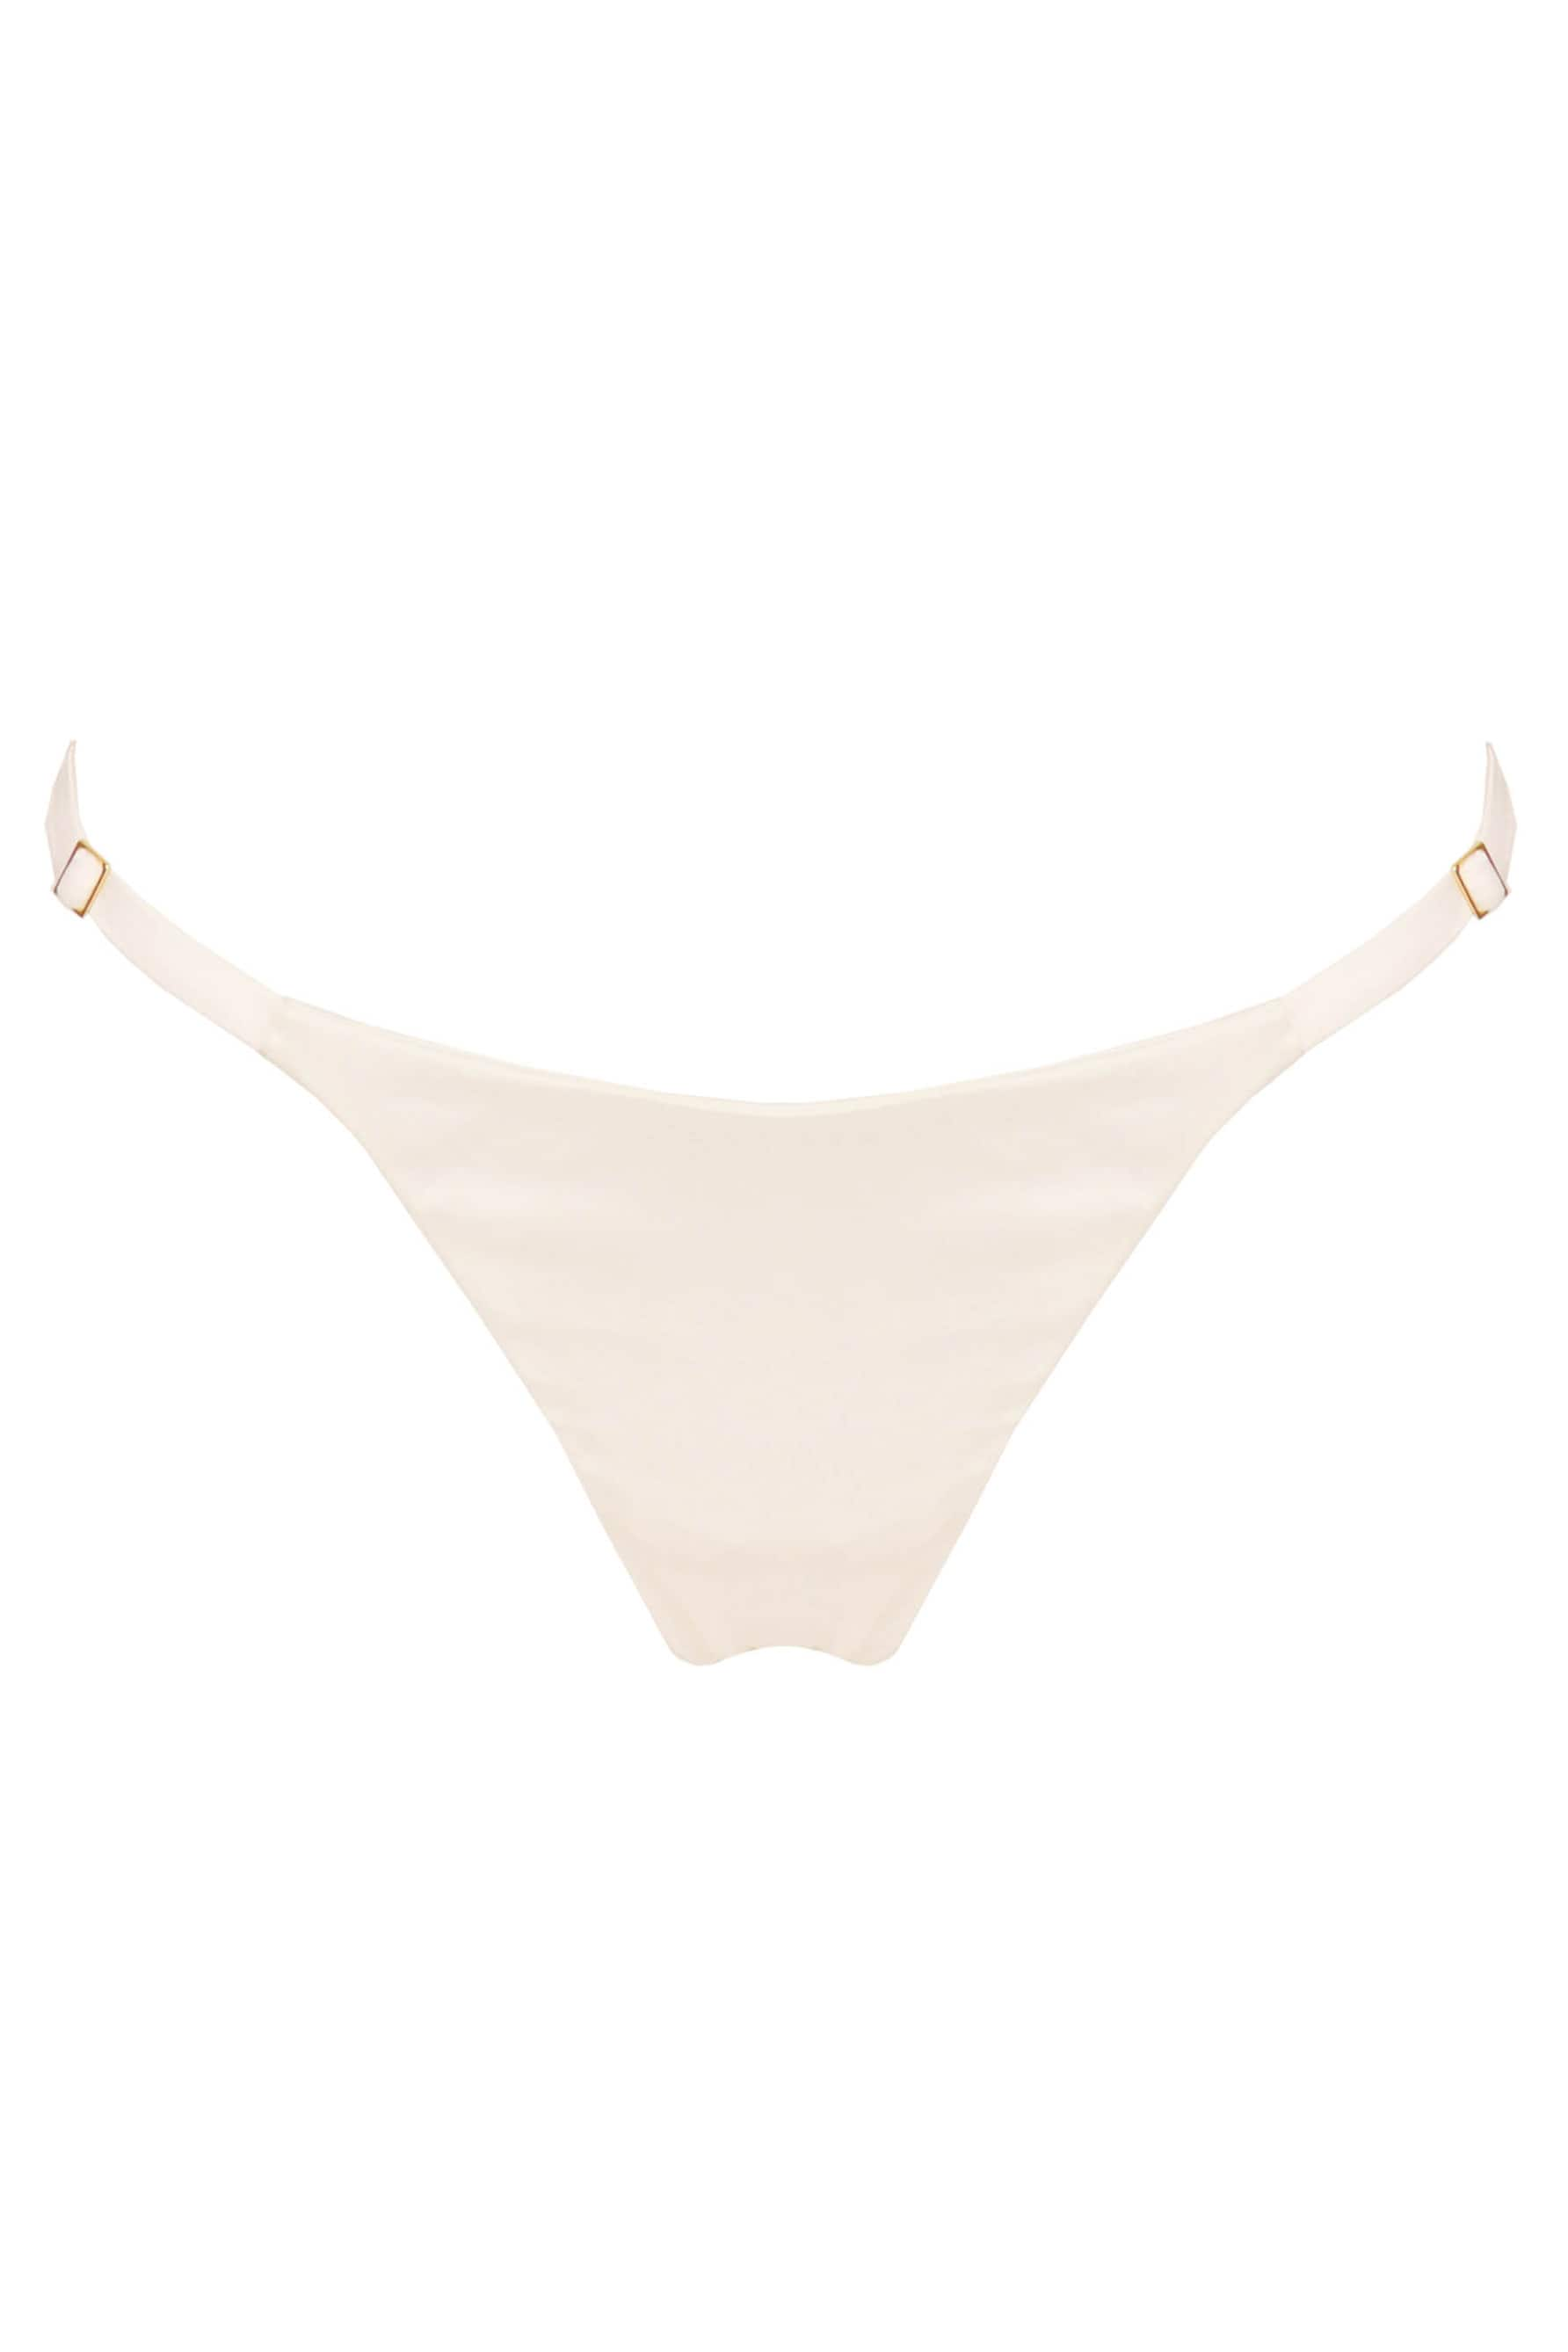 Studio Pia Petra Strap Knicker brief in ivory silk, front view, shown on white background